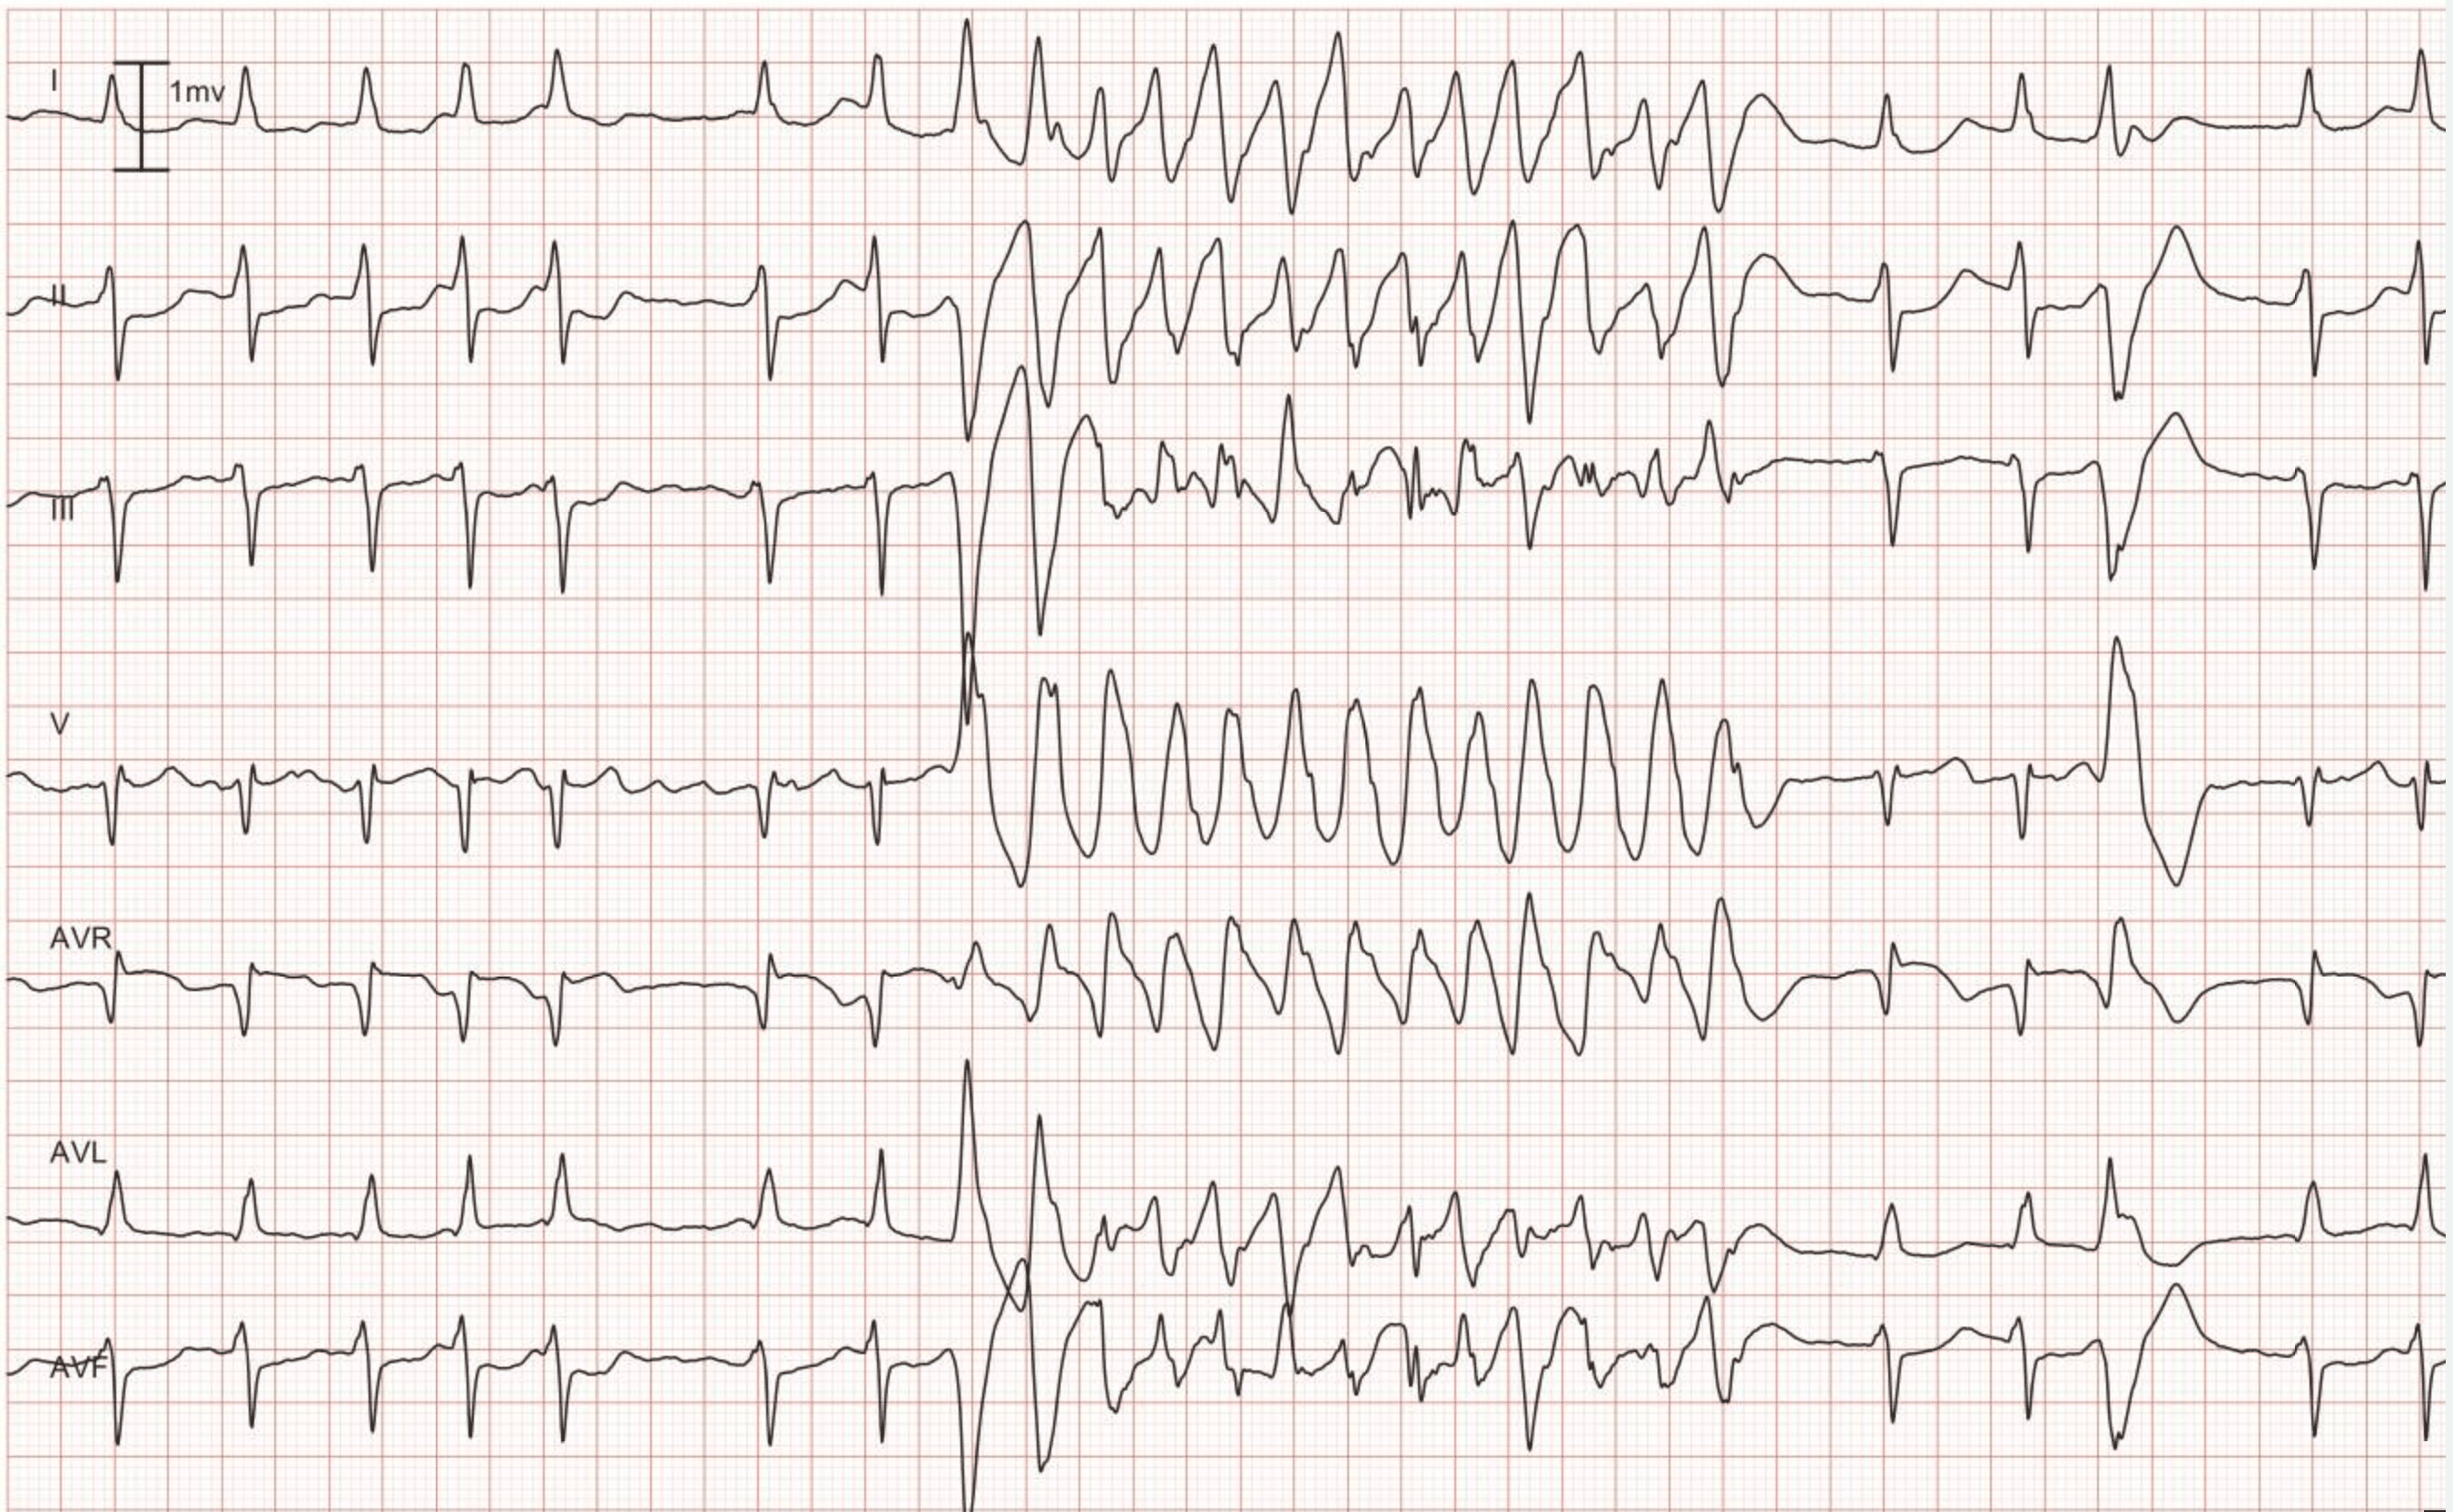 Figure 8. Lead I, II, III, V1 aVR, aVL and aVF. As seen in the beginning of the recording, the patient has an underlying rhythm of atrial fibrillation. The atrial fibrillation is interrupted by a rapid and regular tachycardia with wide QRS complex. Note the 4th beat from the end; it is a premature ventricular beat and its QRS morphology is identical to the QRS seen during the tachycardia. Hence, the tachycardia also originates from the ventricles, which implies that it is ventricular tachycardia (VT).